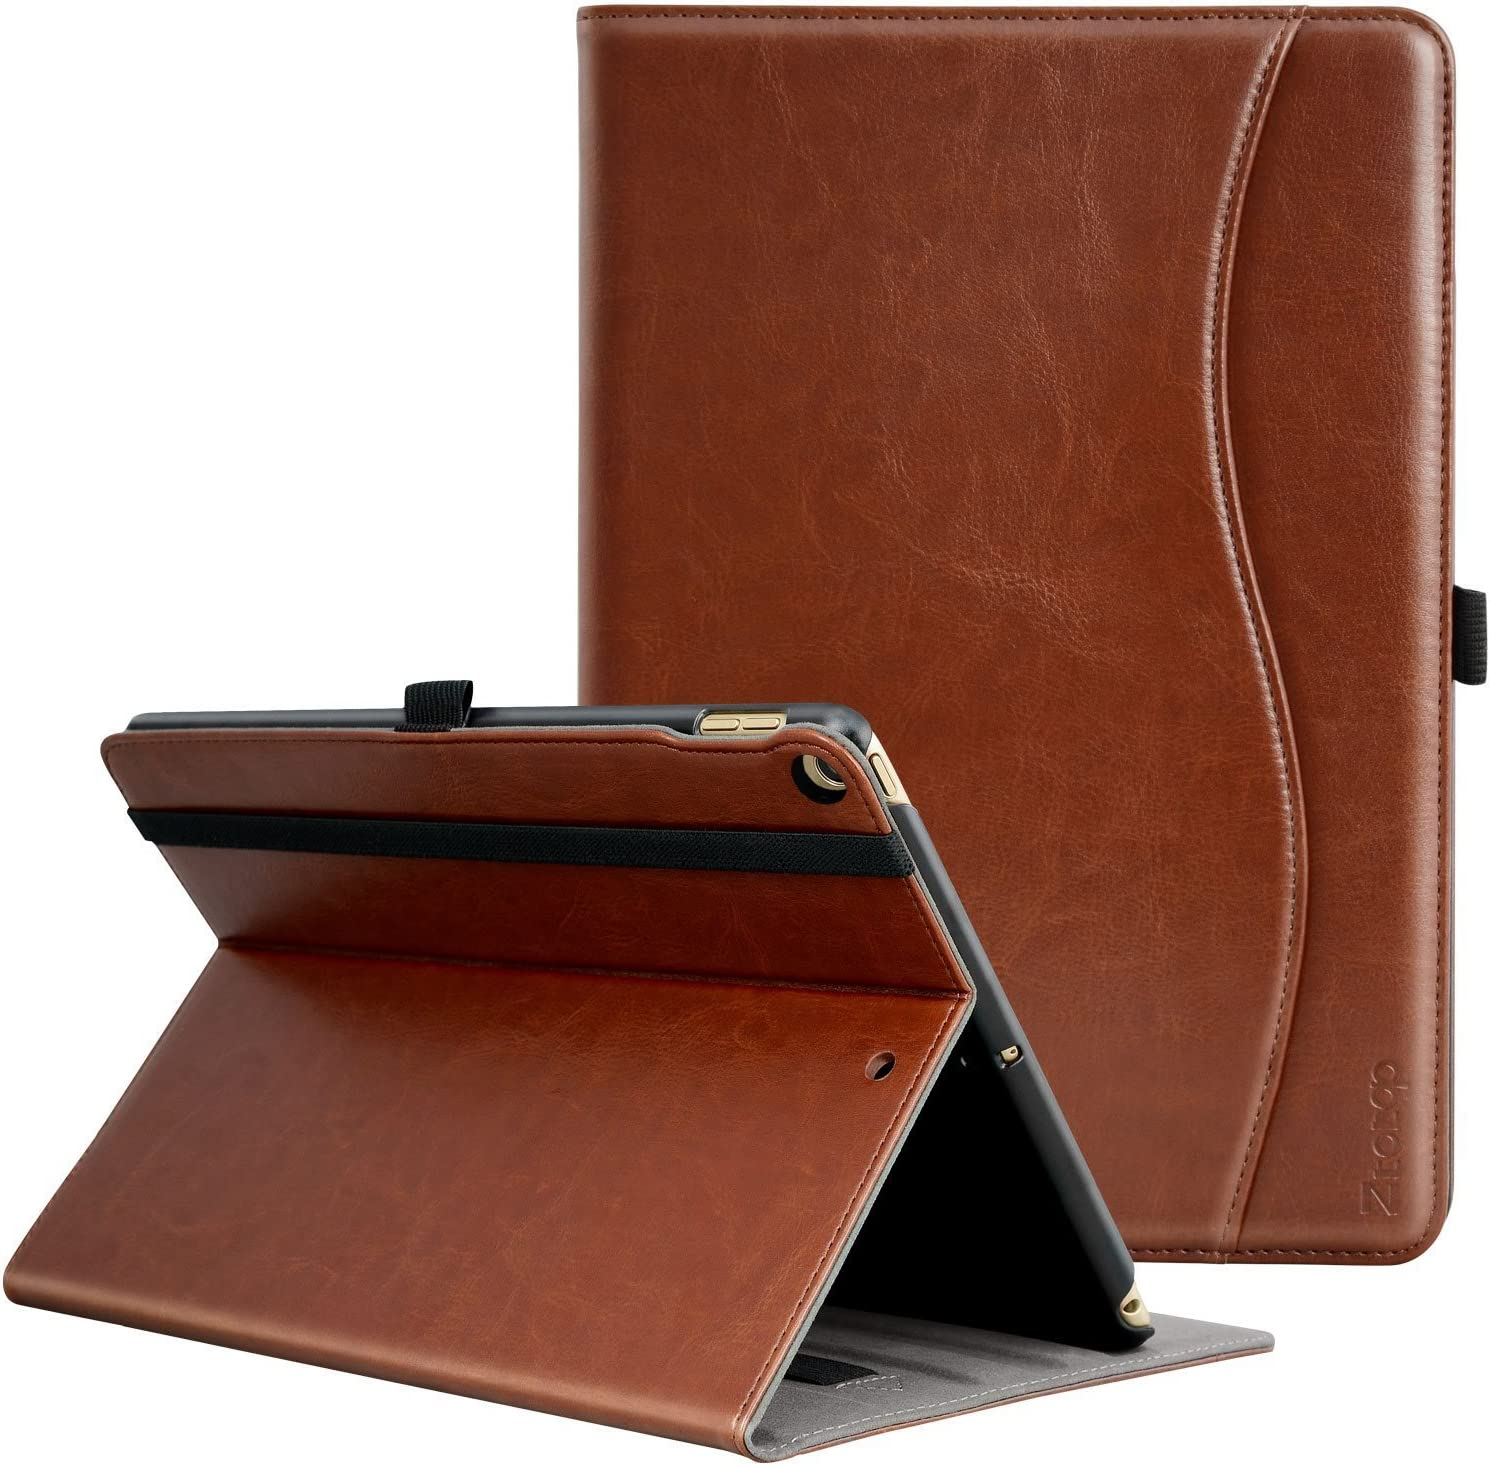 ZtotopCase for New IPad 9.7 Inch 2018/2017,Premium PU Leather Business Slim Folding Stand Folio Cover with Auto Wake/Sleep,Pencil Holder and Multiple Viewing Angles,Brown